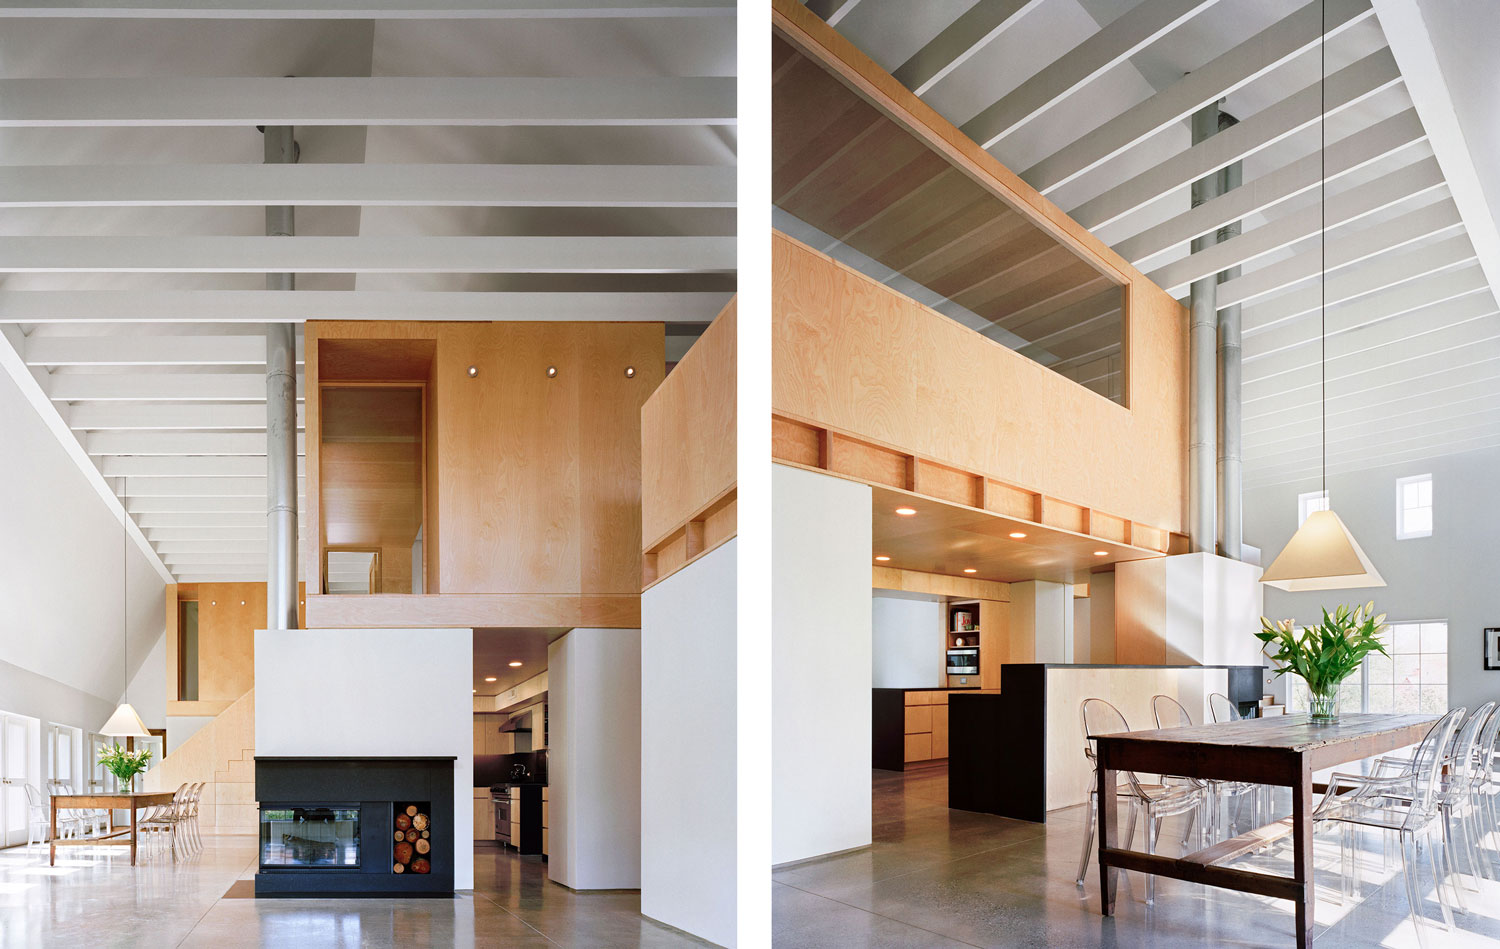 At the same time the design team radically restructured the interior of the barn removing the entire second floor and adding exterior buttresses to create